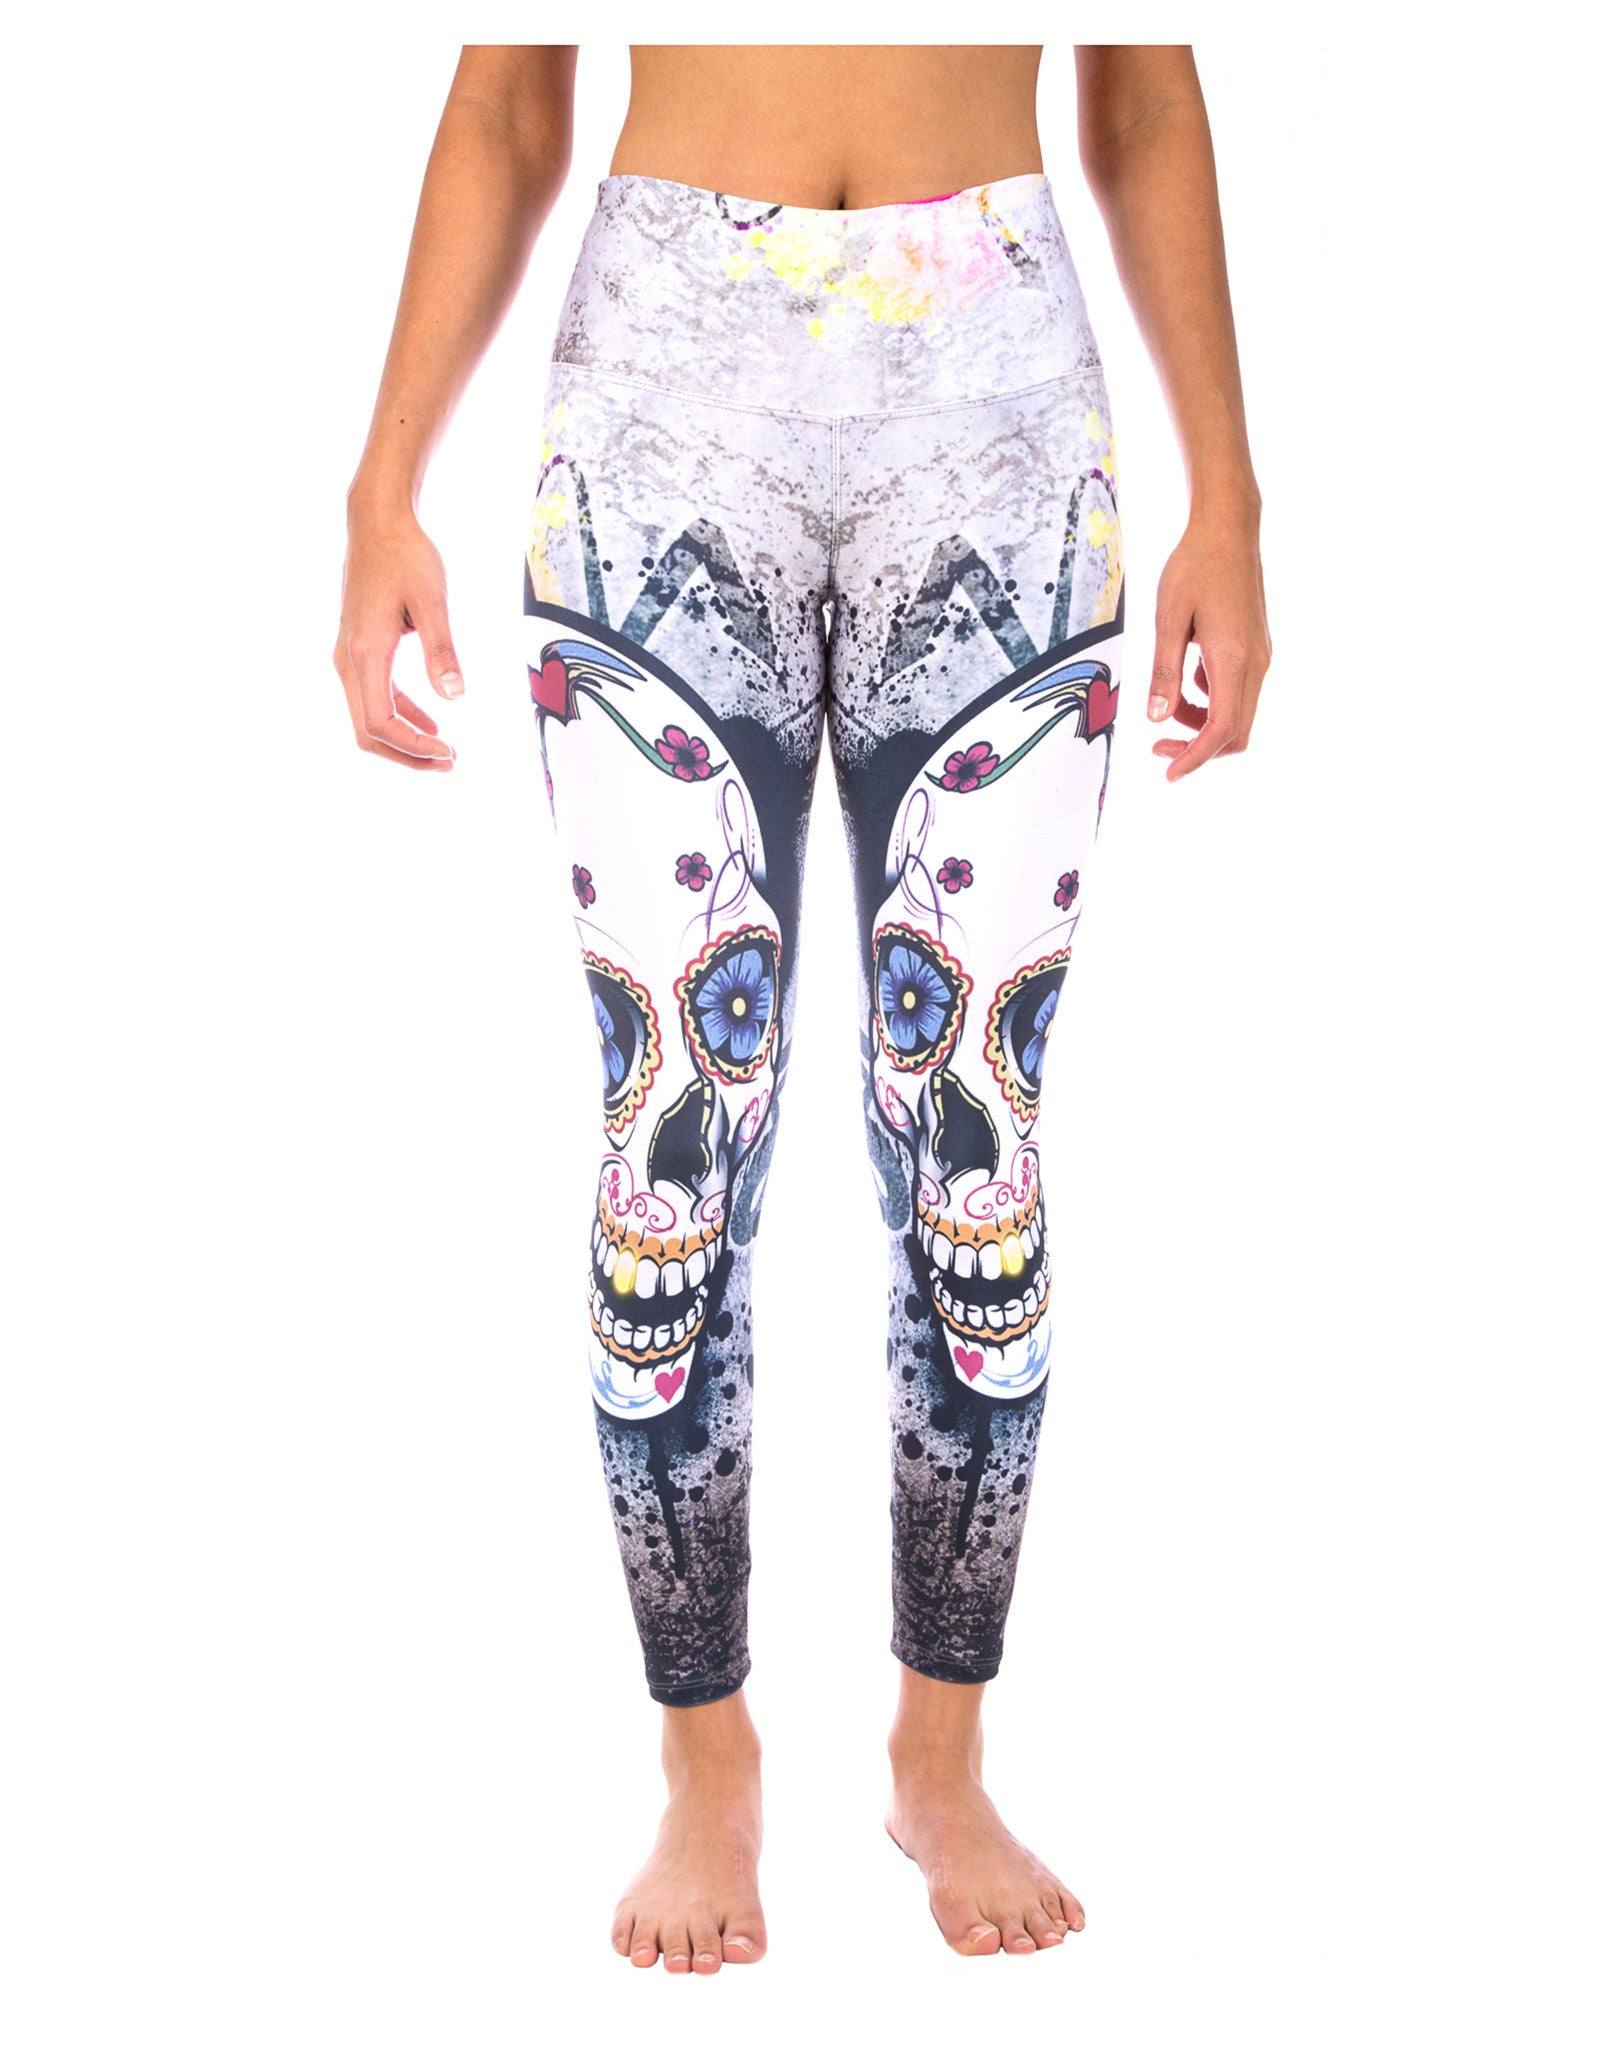 db4ccf0425a33 Gold Digger Skull Yoga Pants | Day of the Dead Leggings | LavaLoka ...